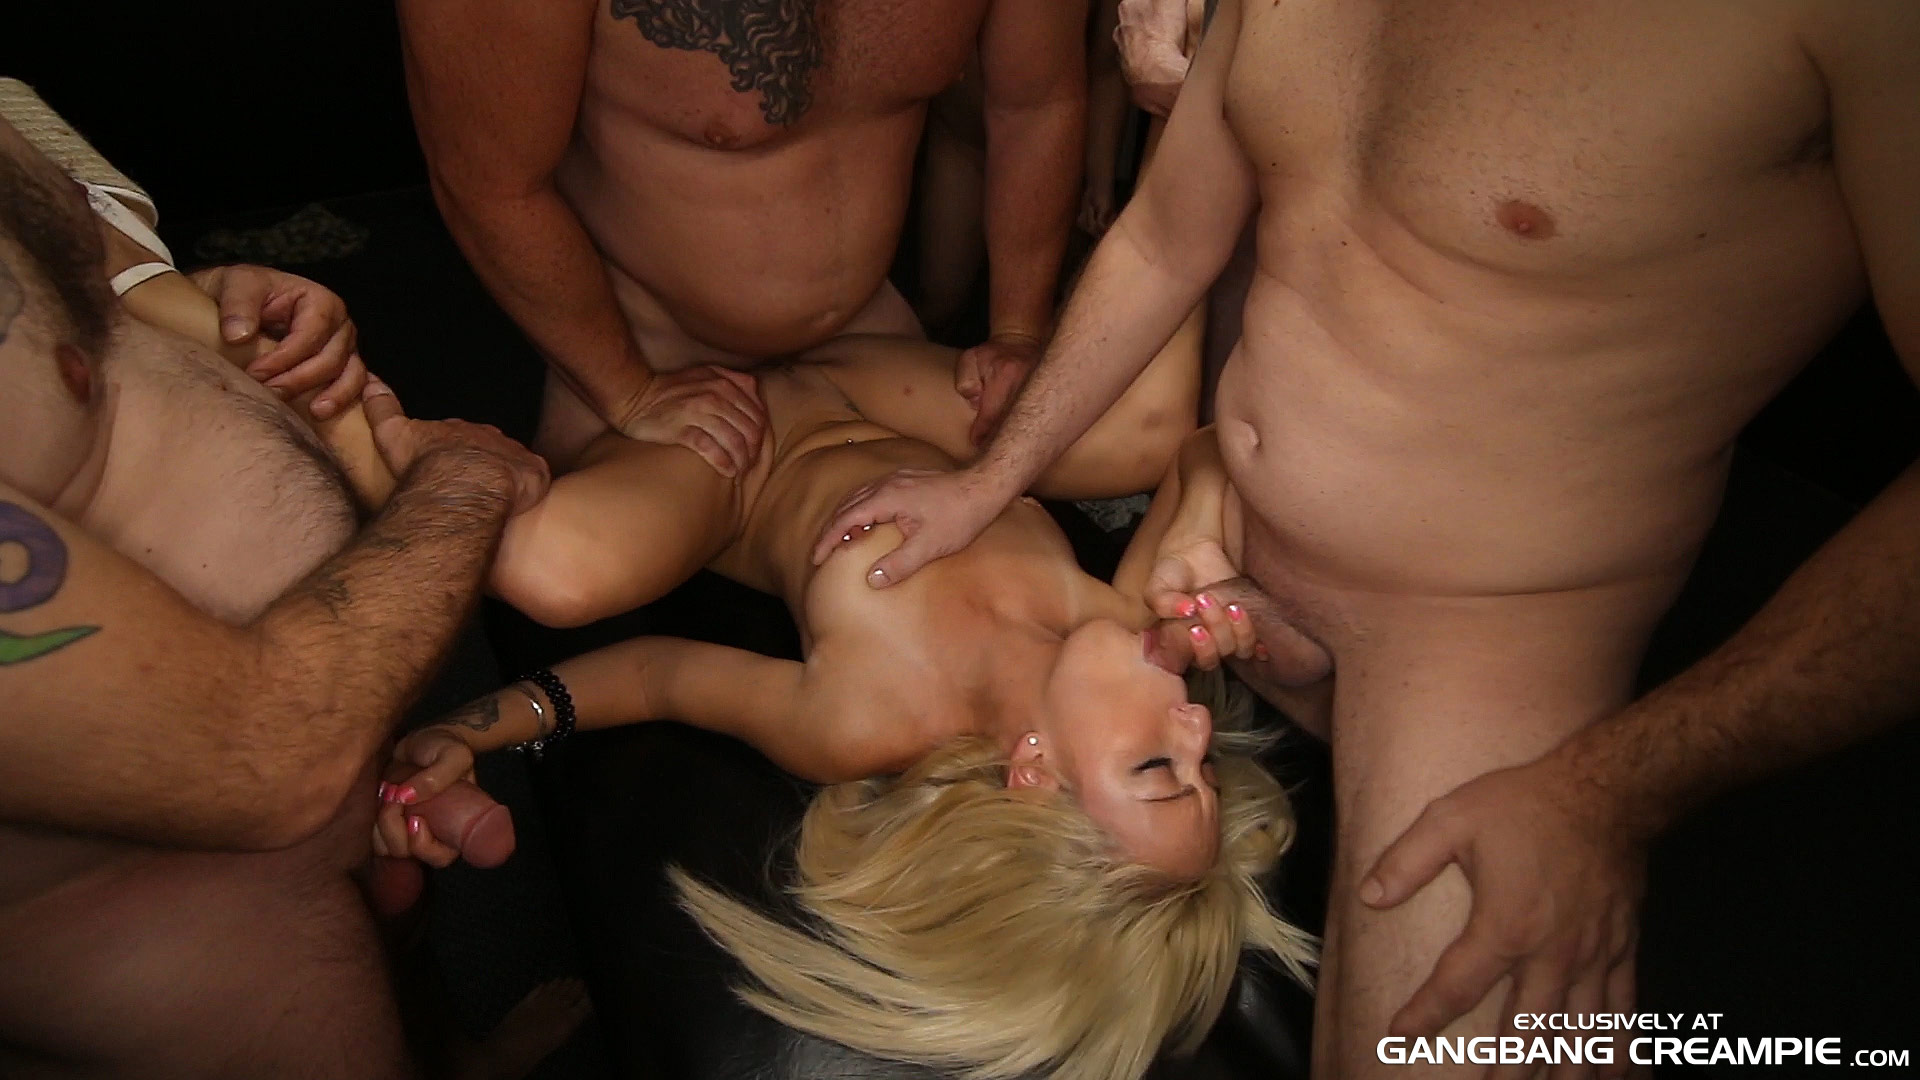 Tiny Asian Gangbang Creampie